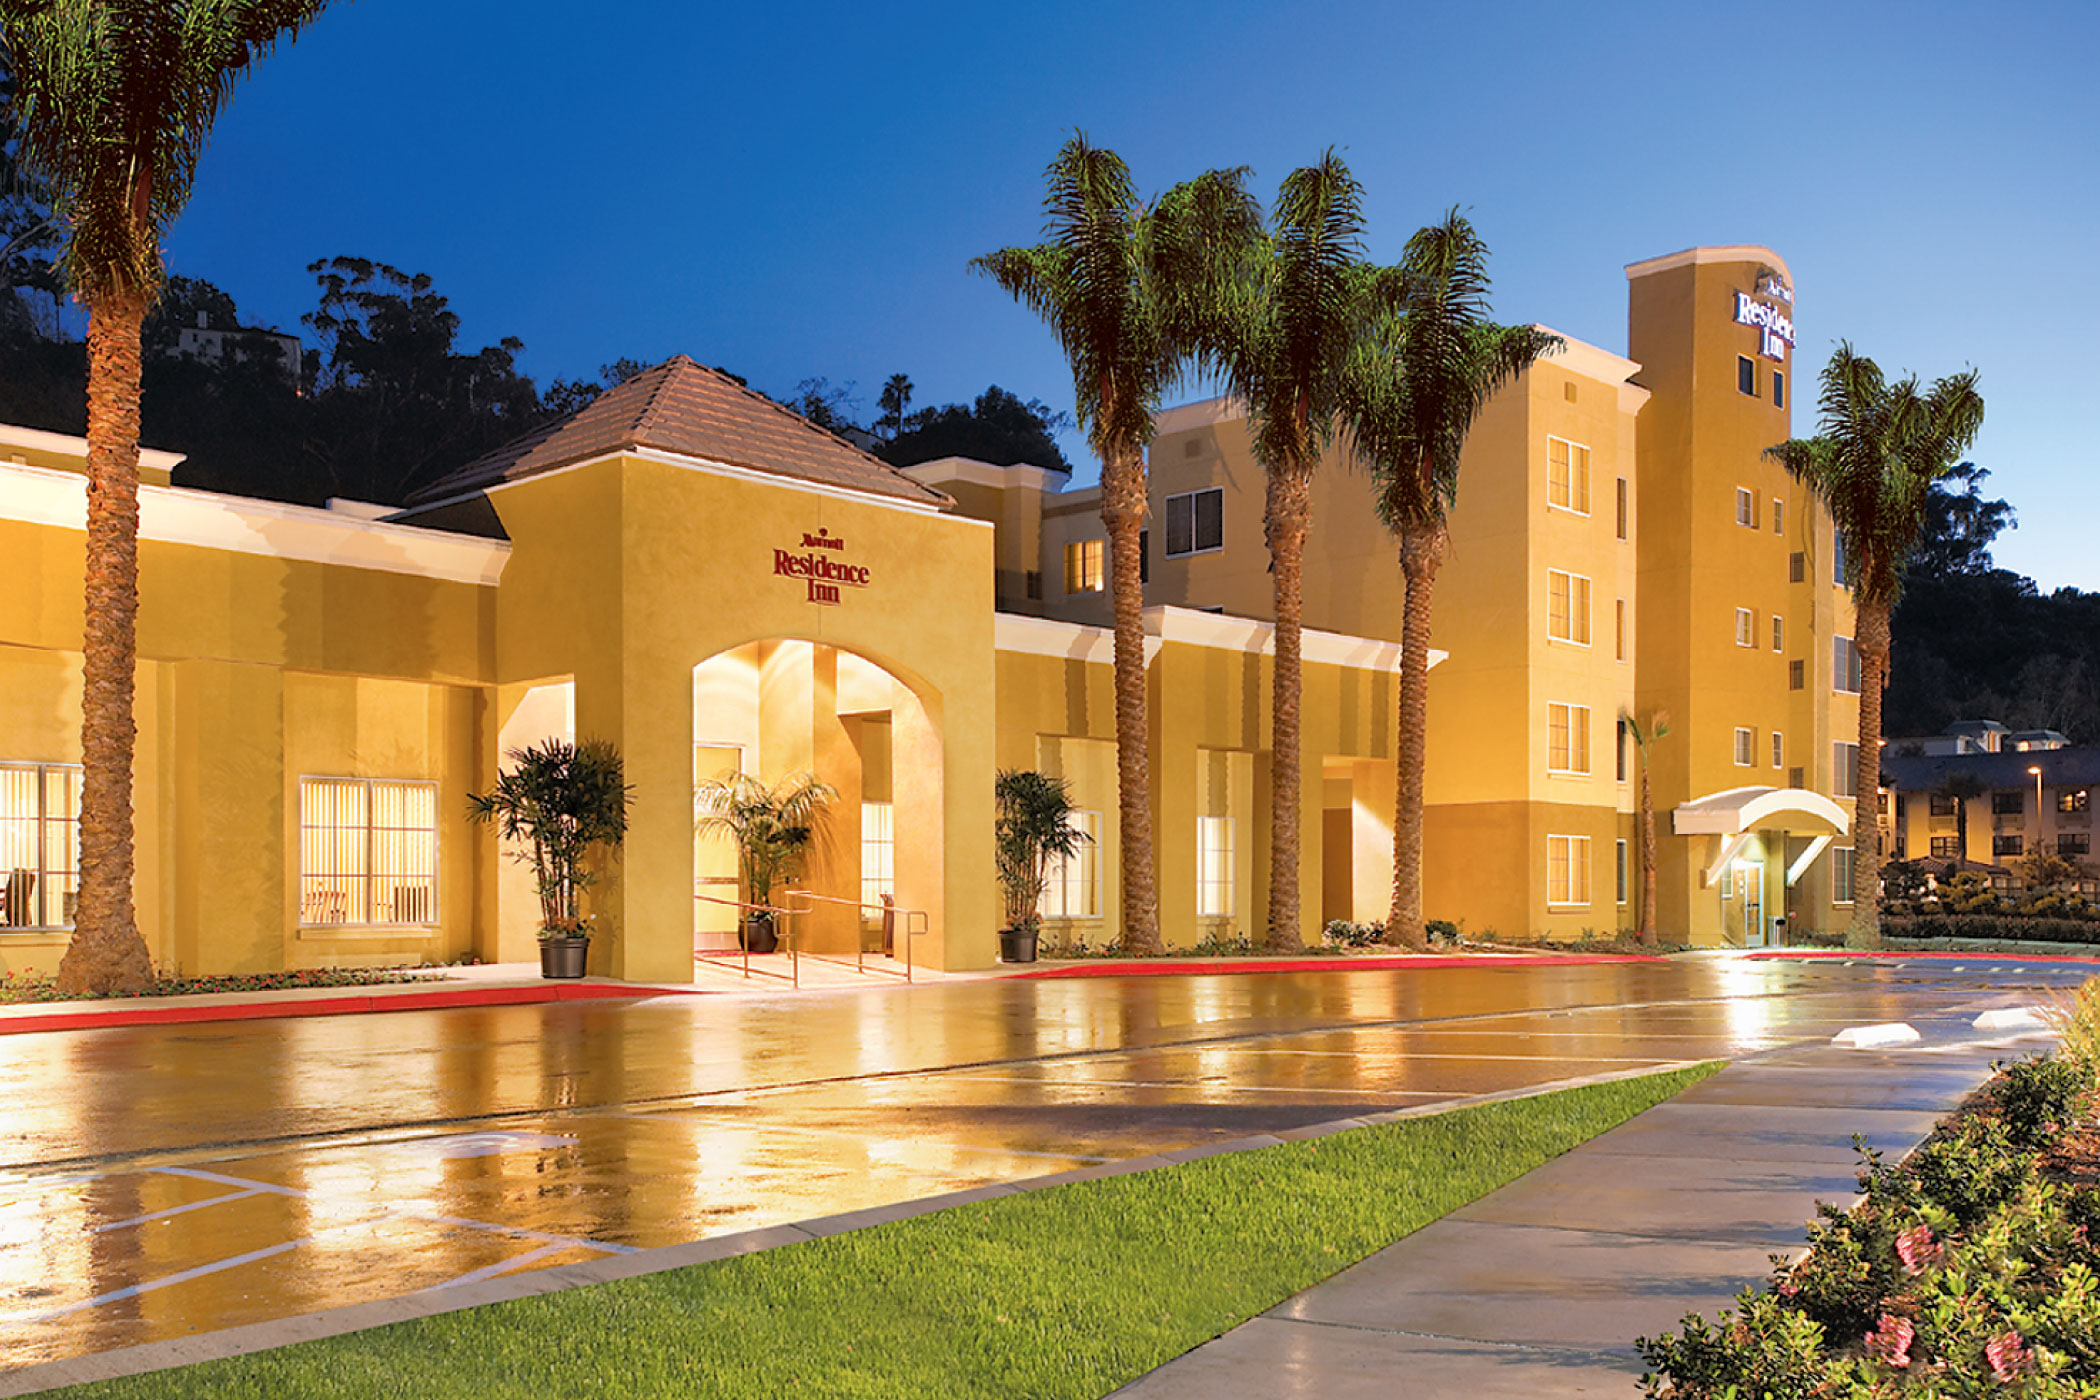 Chatham Lodging Trust sold the 192-room Residence Inn By Marriott San Diego Mission Valley for $67 million in December 2020 to the San Diego Housing Commission, which intends to turn the property into permanent housing for the homeless. (Chatham Lodging Trust)